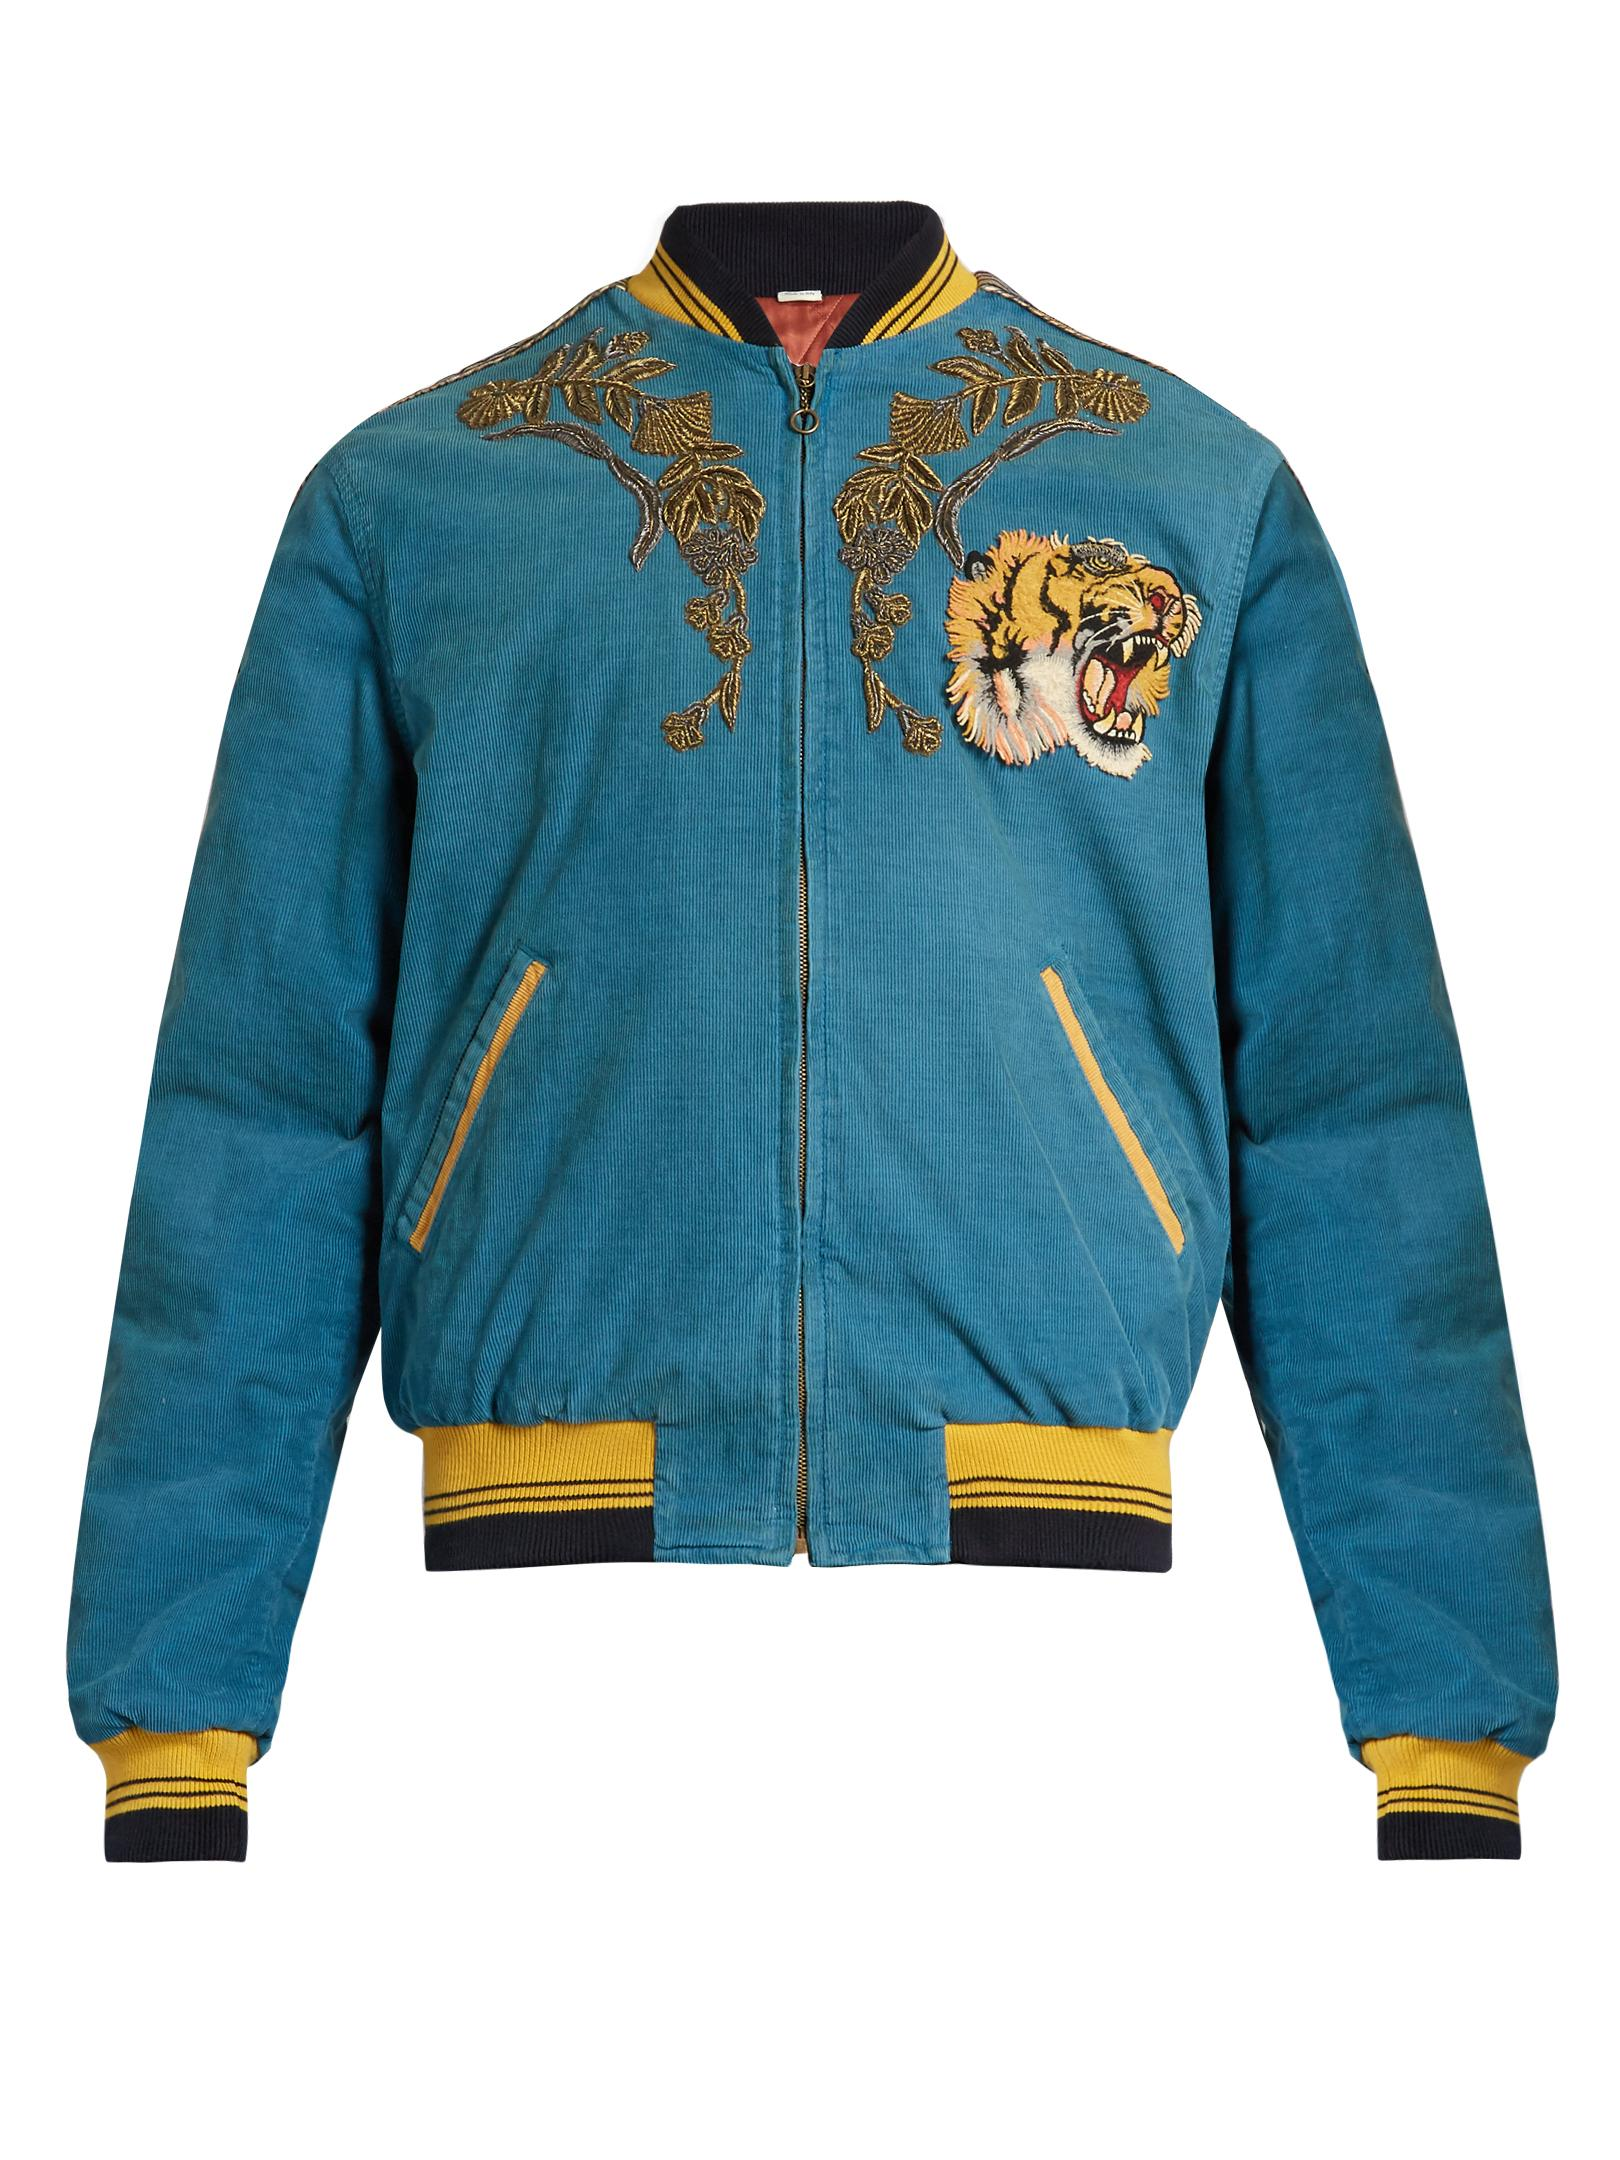 Gucci dragon embroidered corduroy bomber jacket in blue